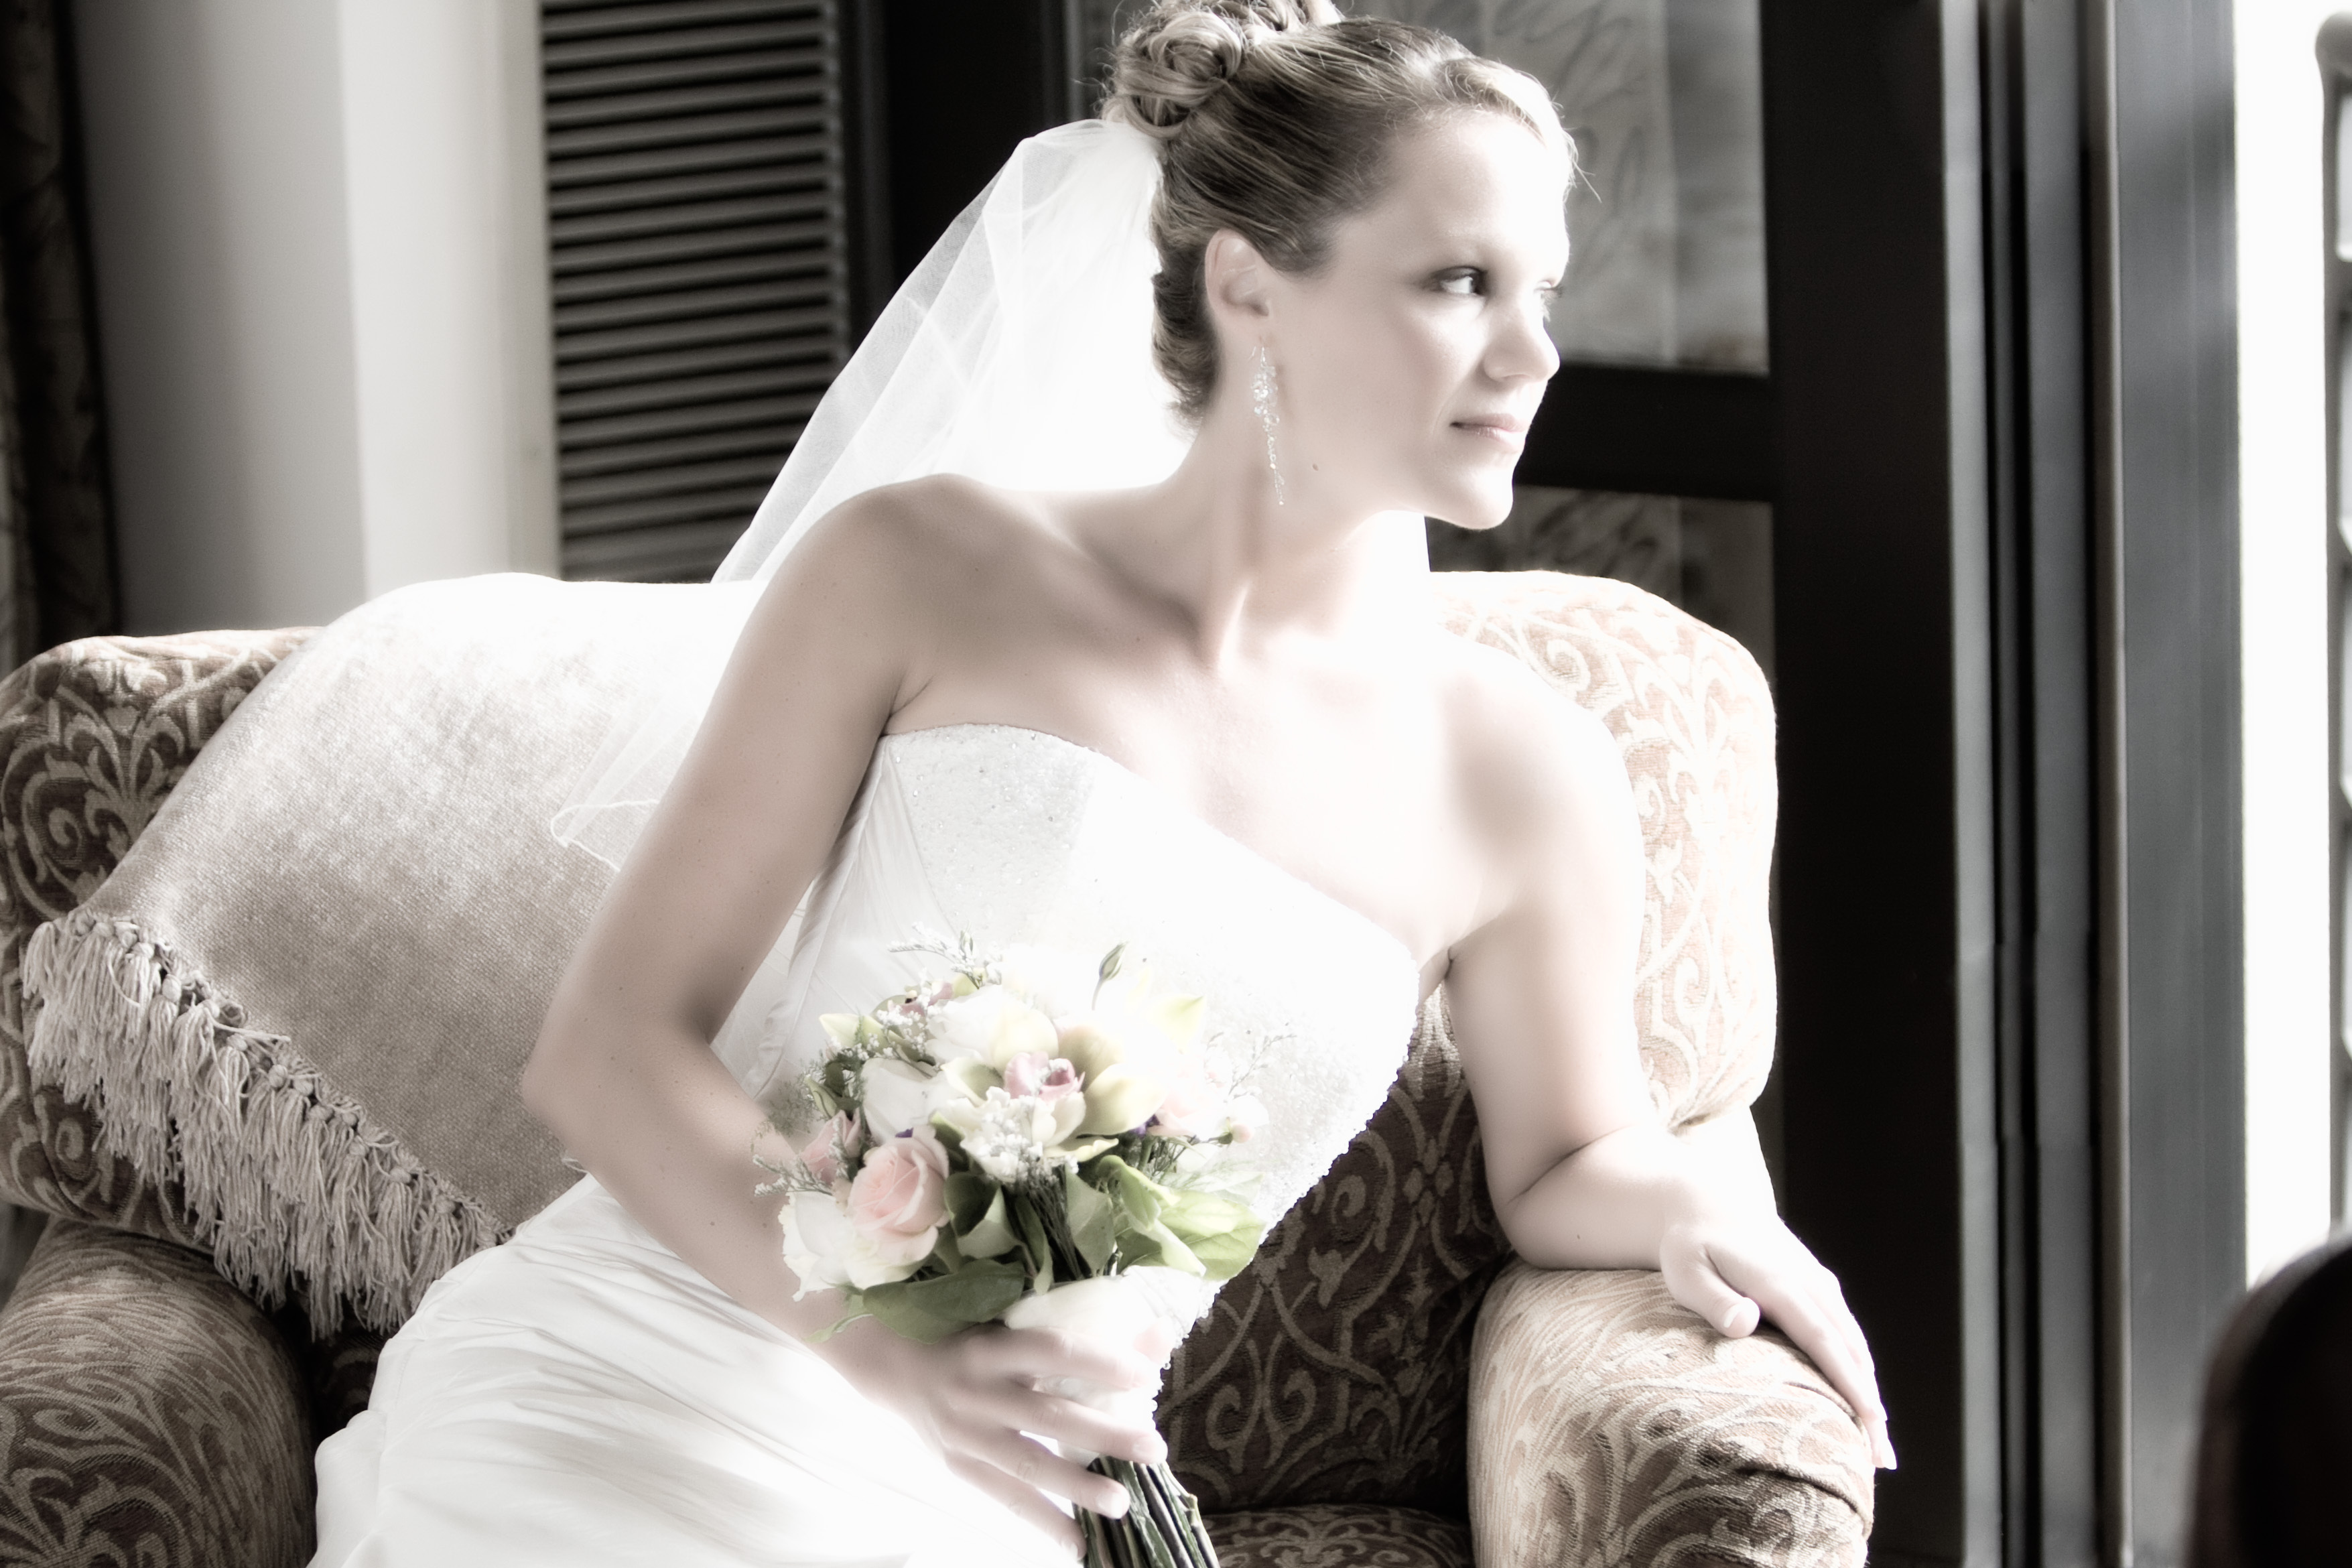 Flowers & Decor, Bride Bouquets, Bride, Flowers, Portrait, Firstlight photography